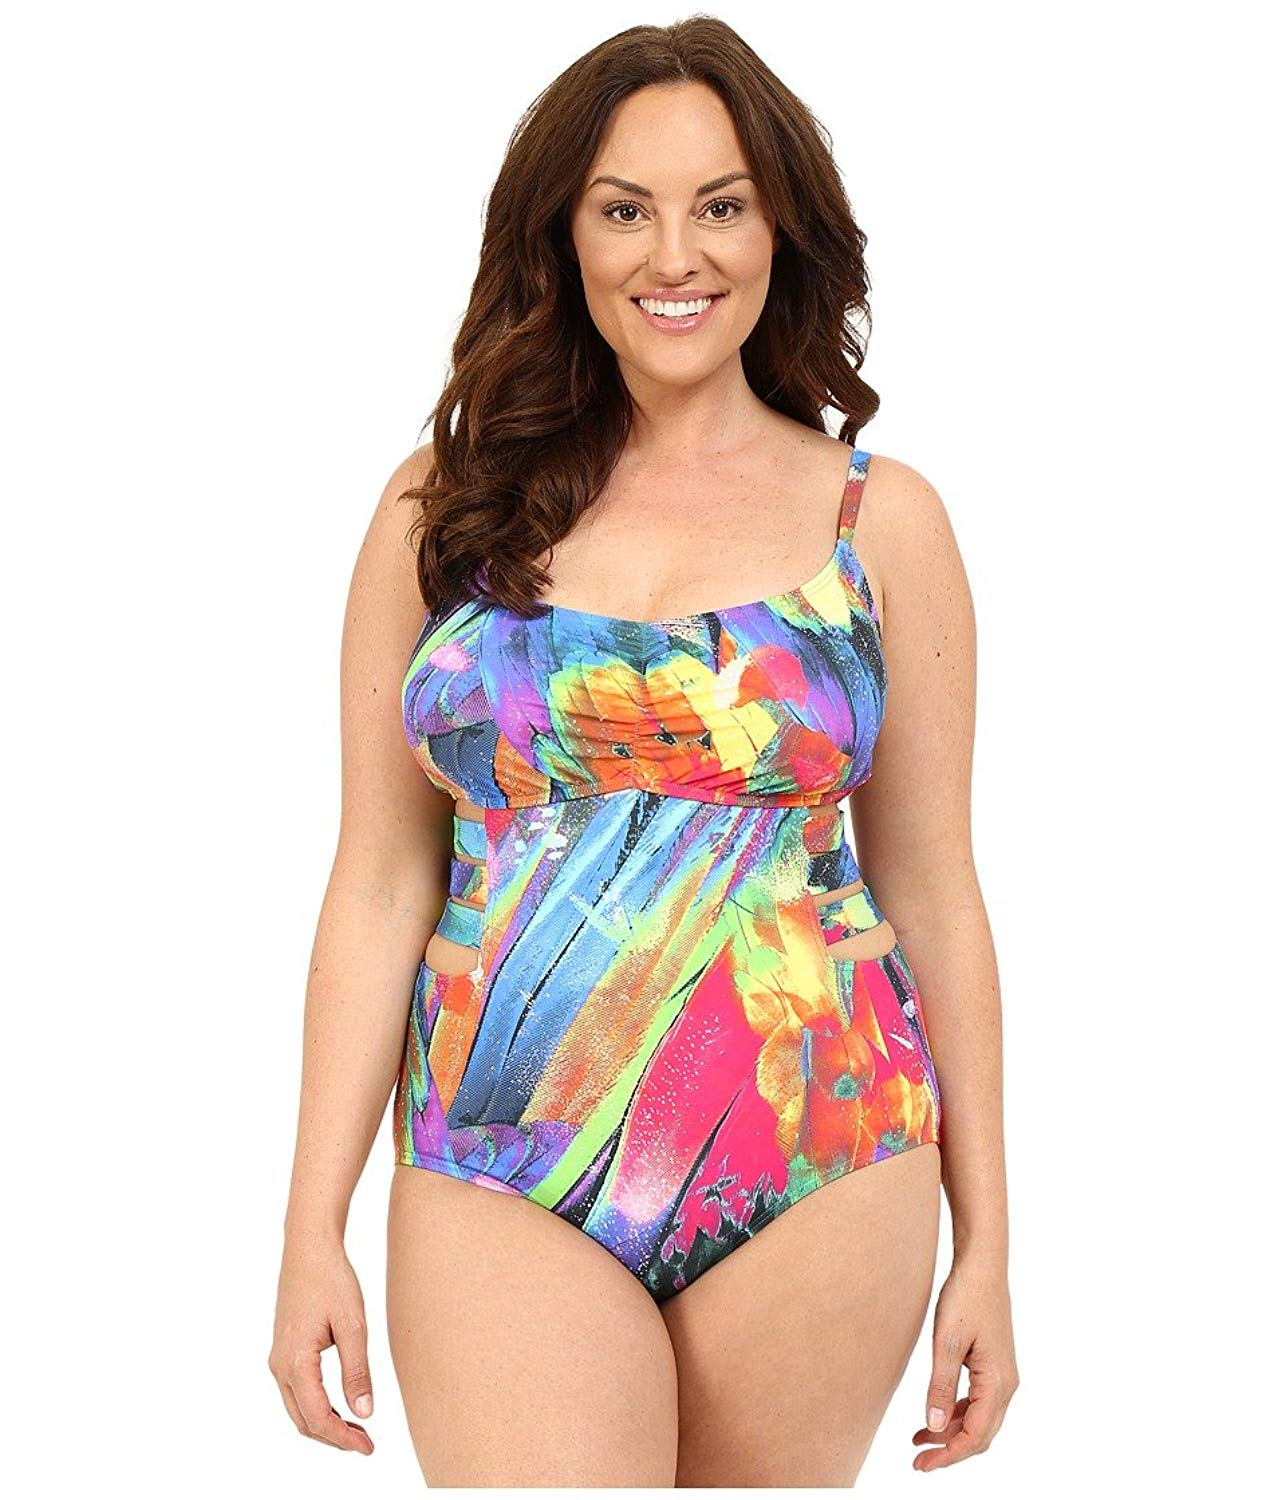 4790c012baa9e Cheap Bubble Swimsuit, find Bubble Swimsuit deals on line at Alibaba.com